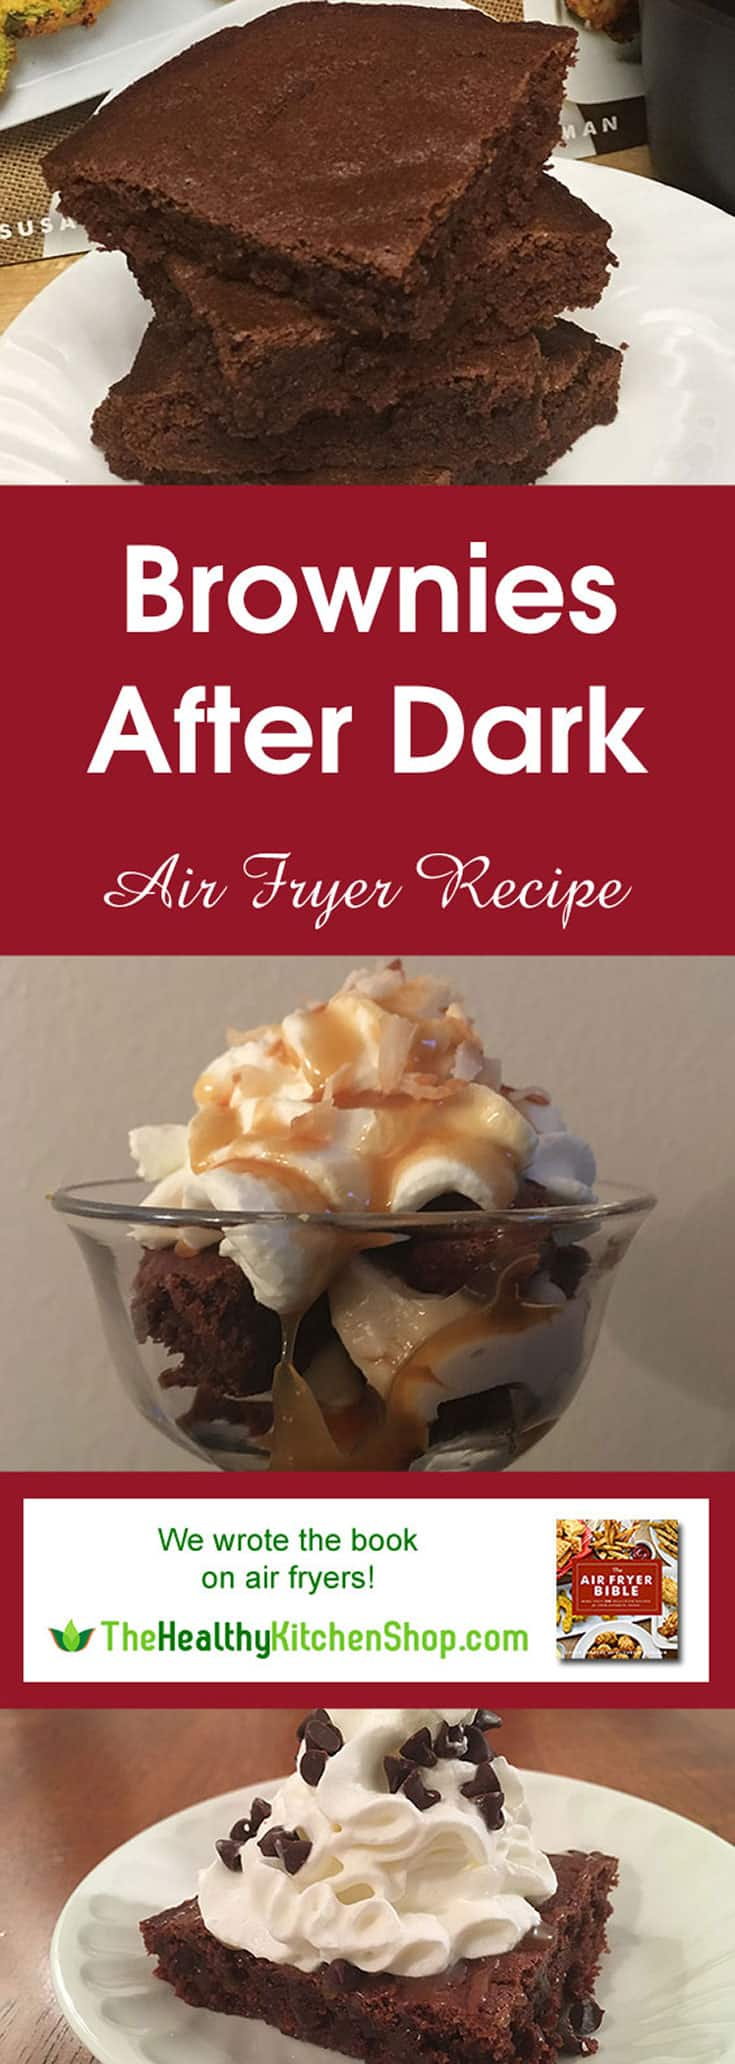 Air Fryer Recipe - Brownies After Dark from The Air Fryer Bible, TheHealthyKitchenShop.com